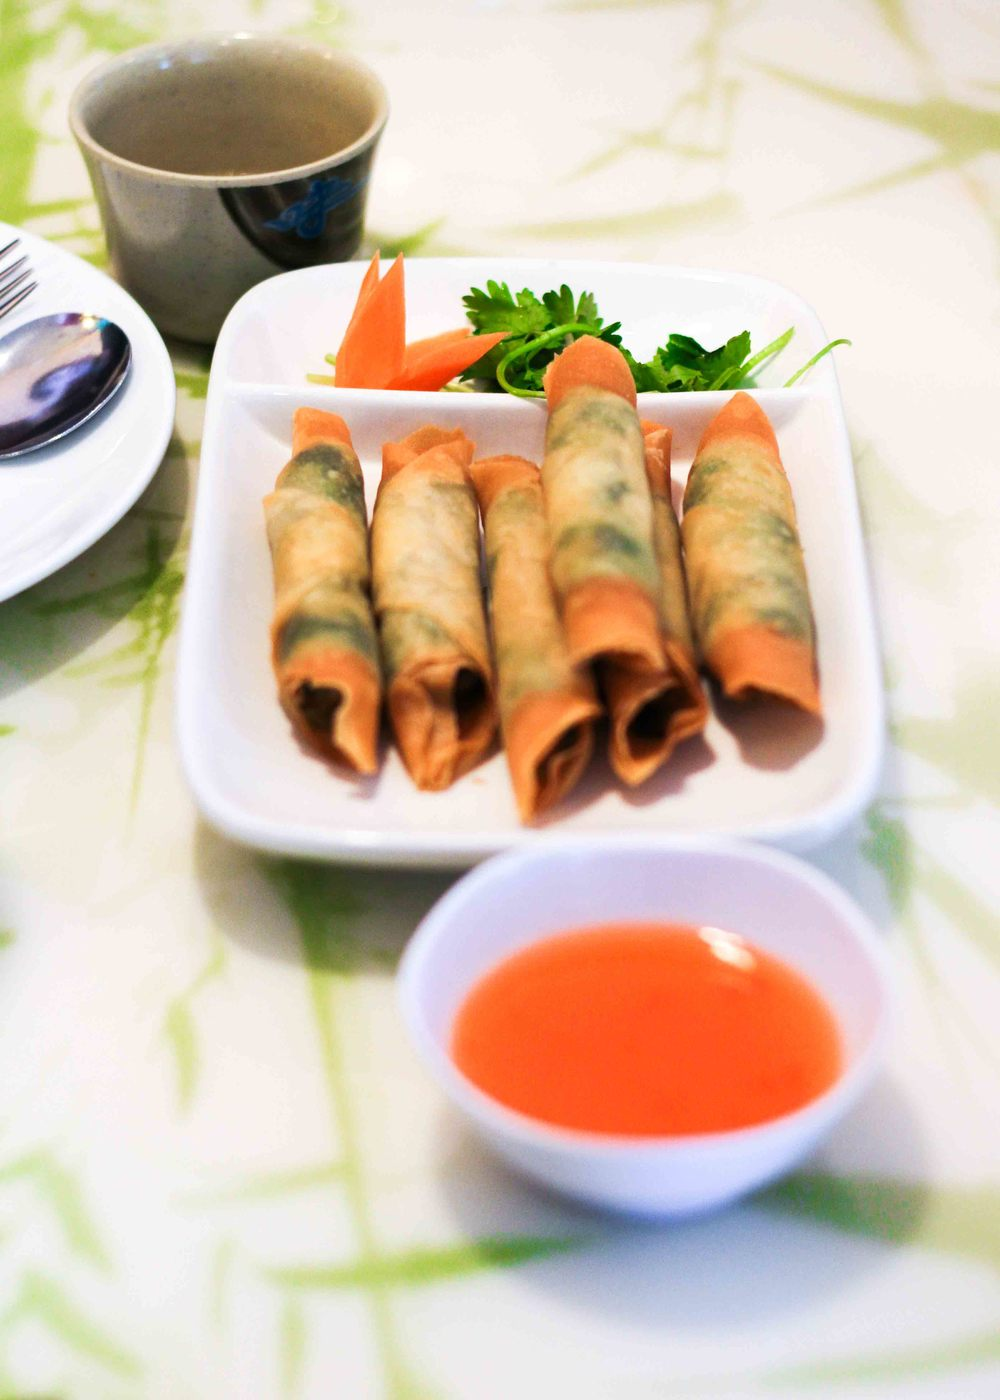 We started off our meal with fish and cilantro spring rolls.